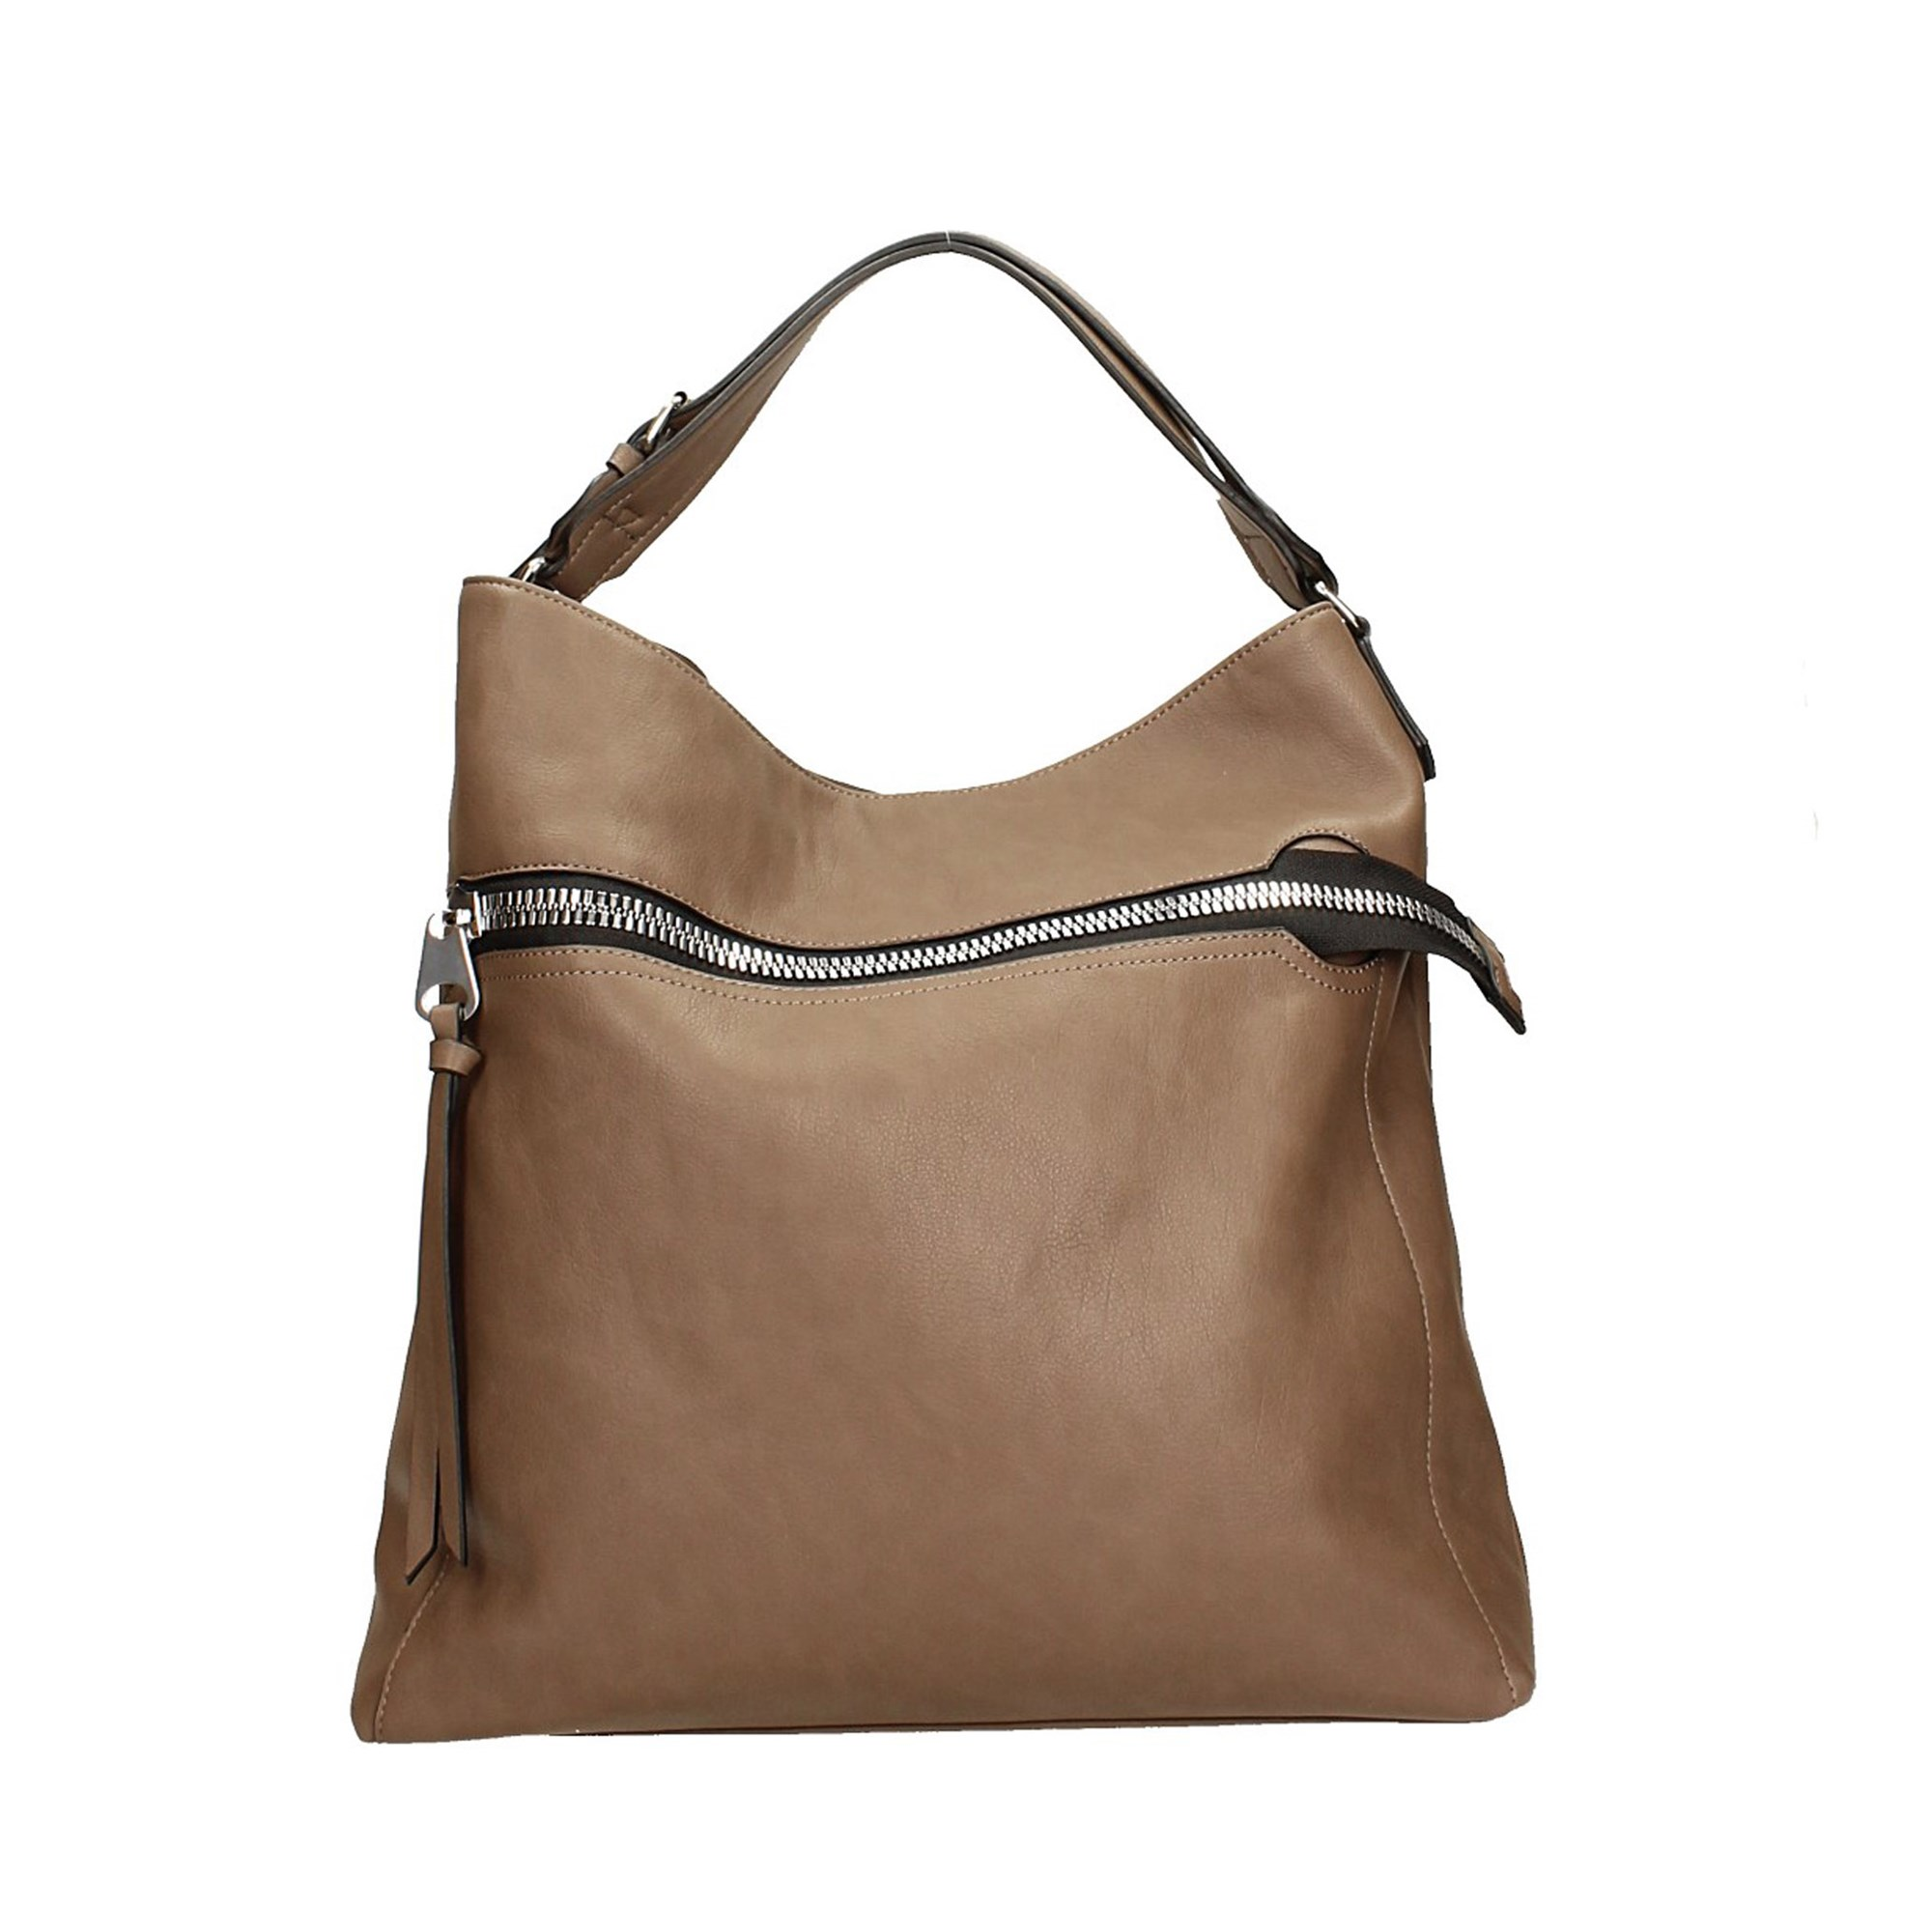 Tata Italia Accessories Woman Bags Brown D182039-2